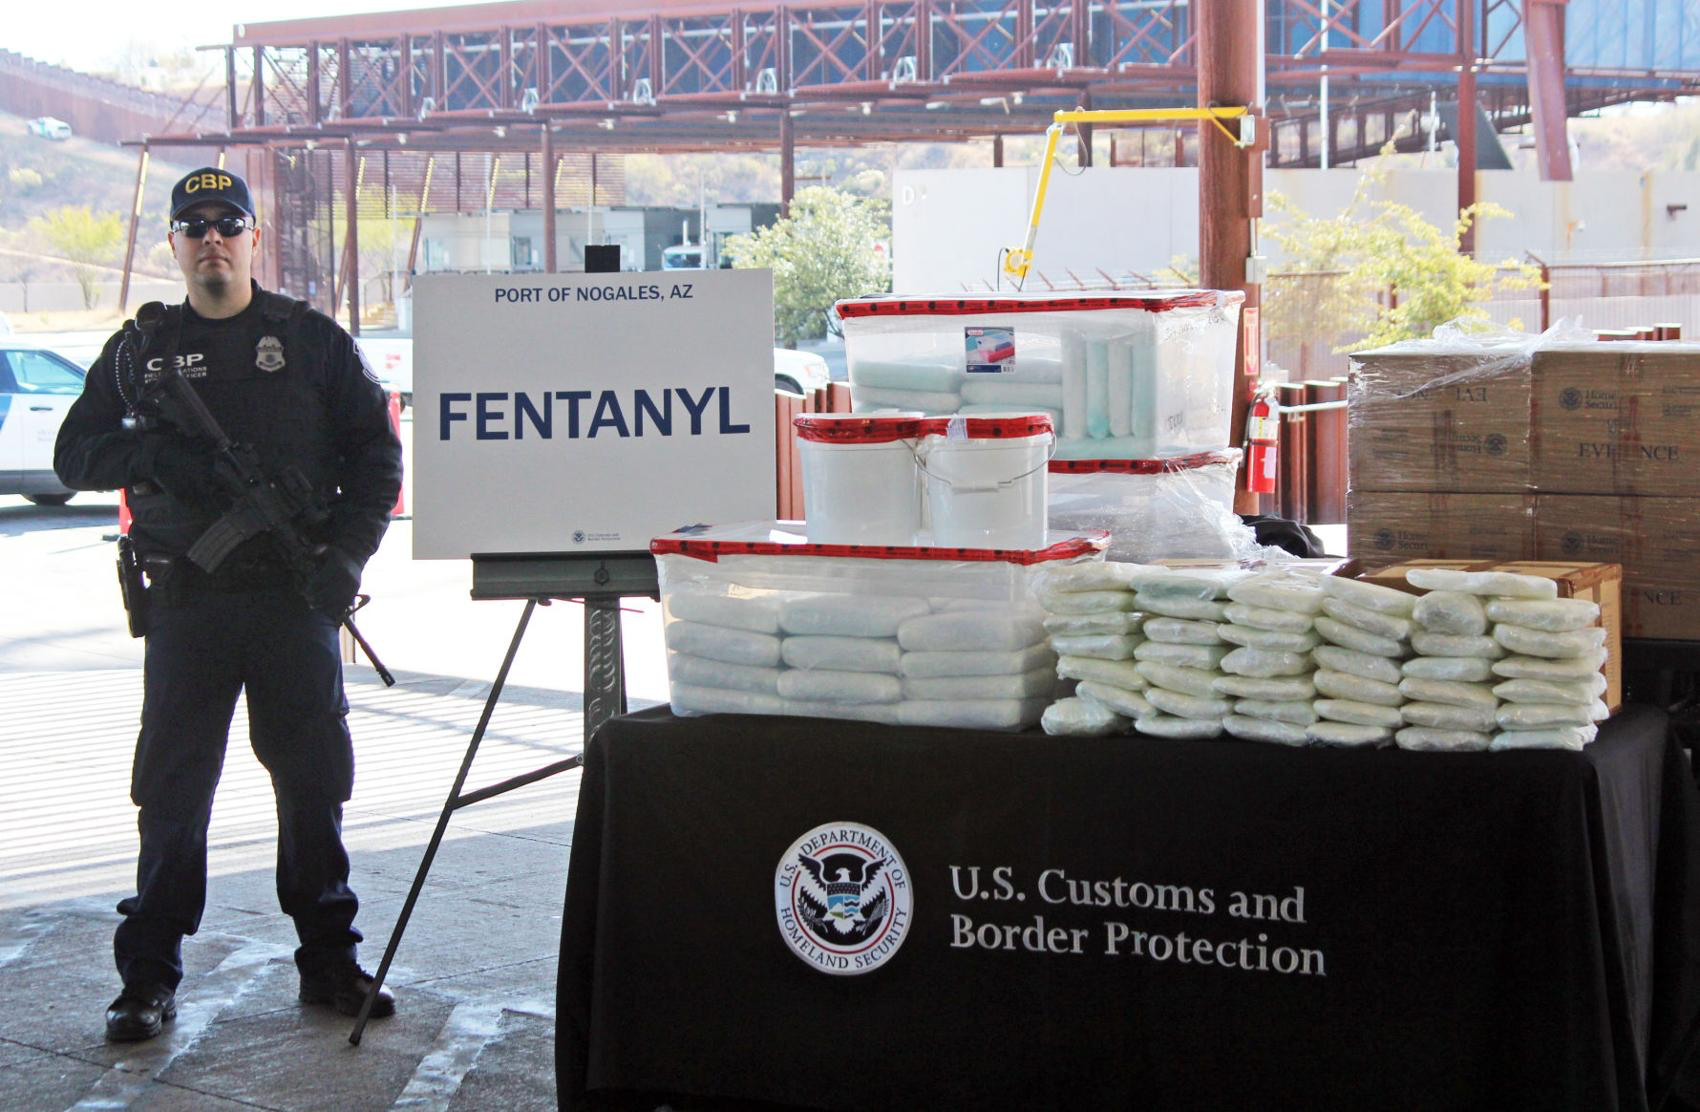 A U.S. Customs and Border Protection agent stands next to the largest seizure of fentanyl in the US, valued at over $3.5 million. Photo:  Nick Phillips/Nogales International .